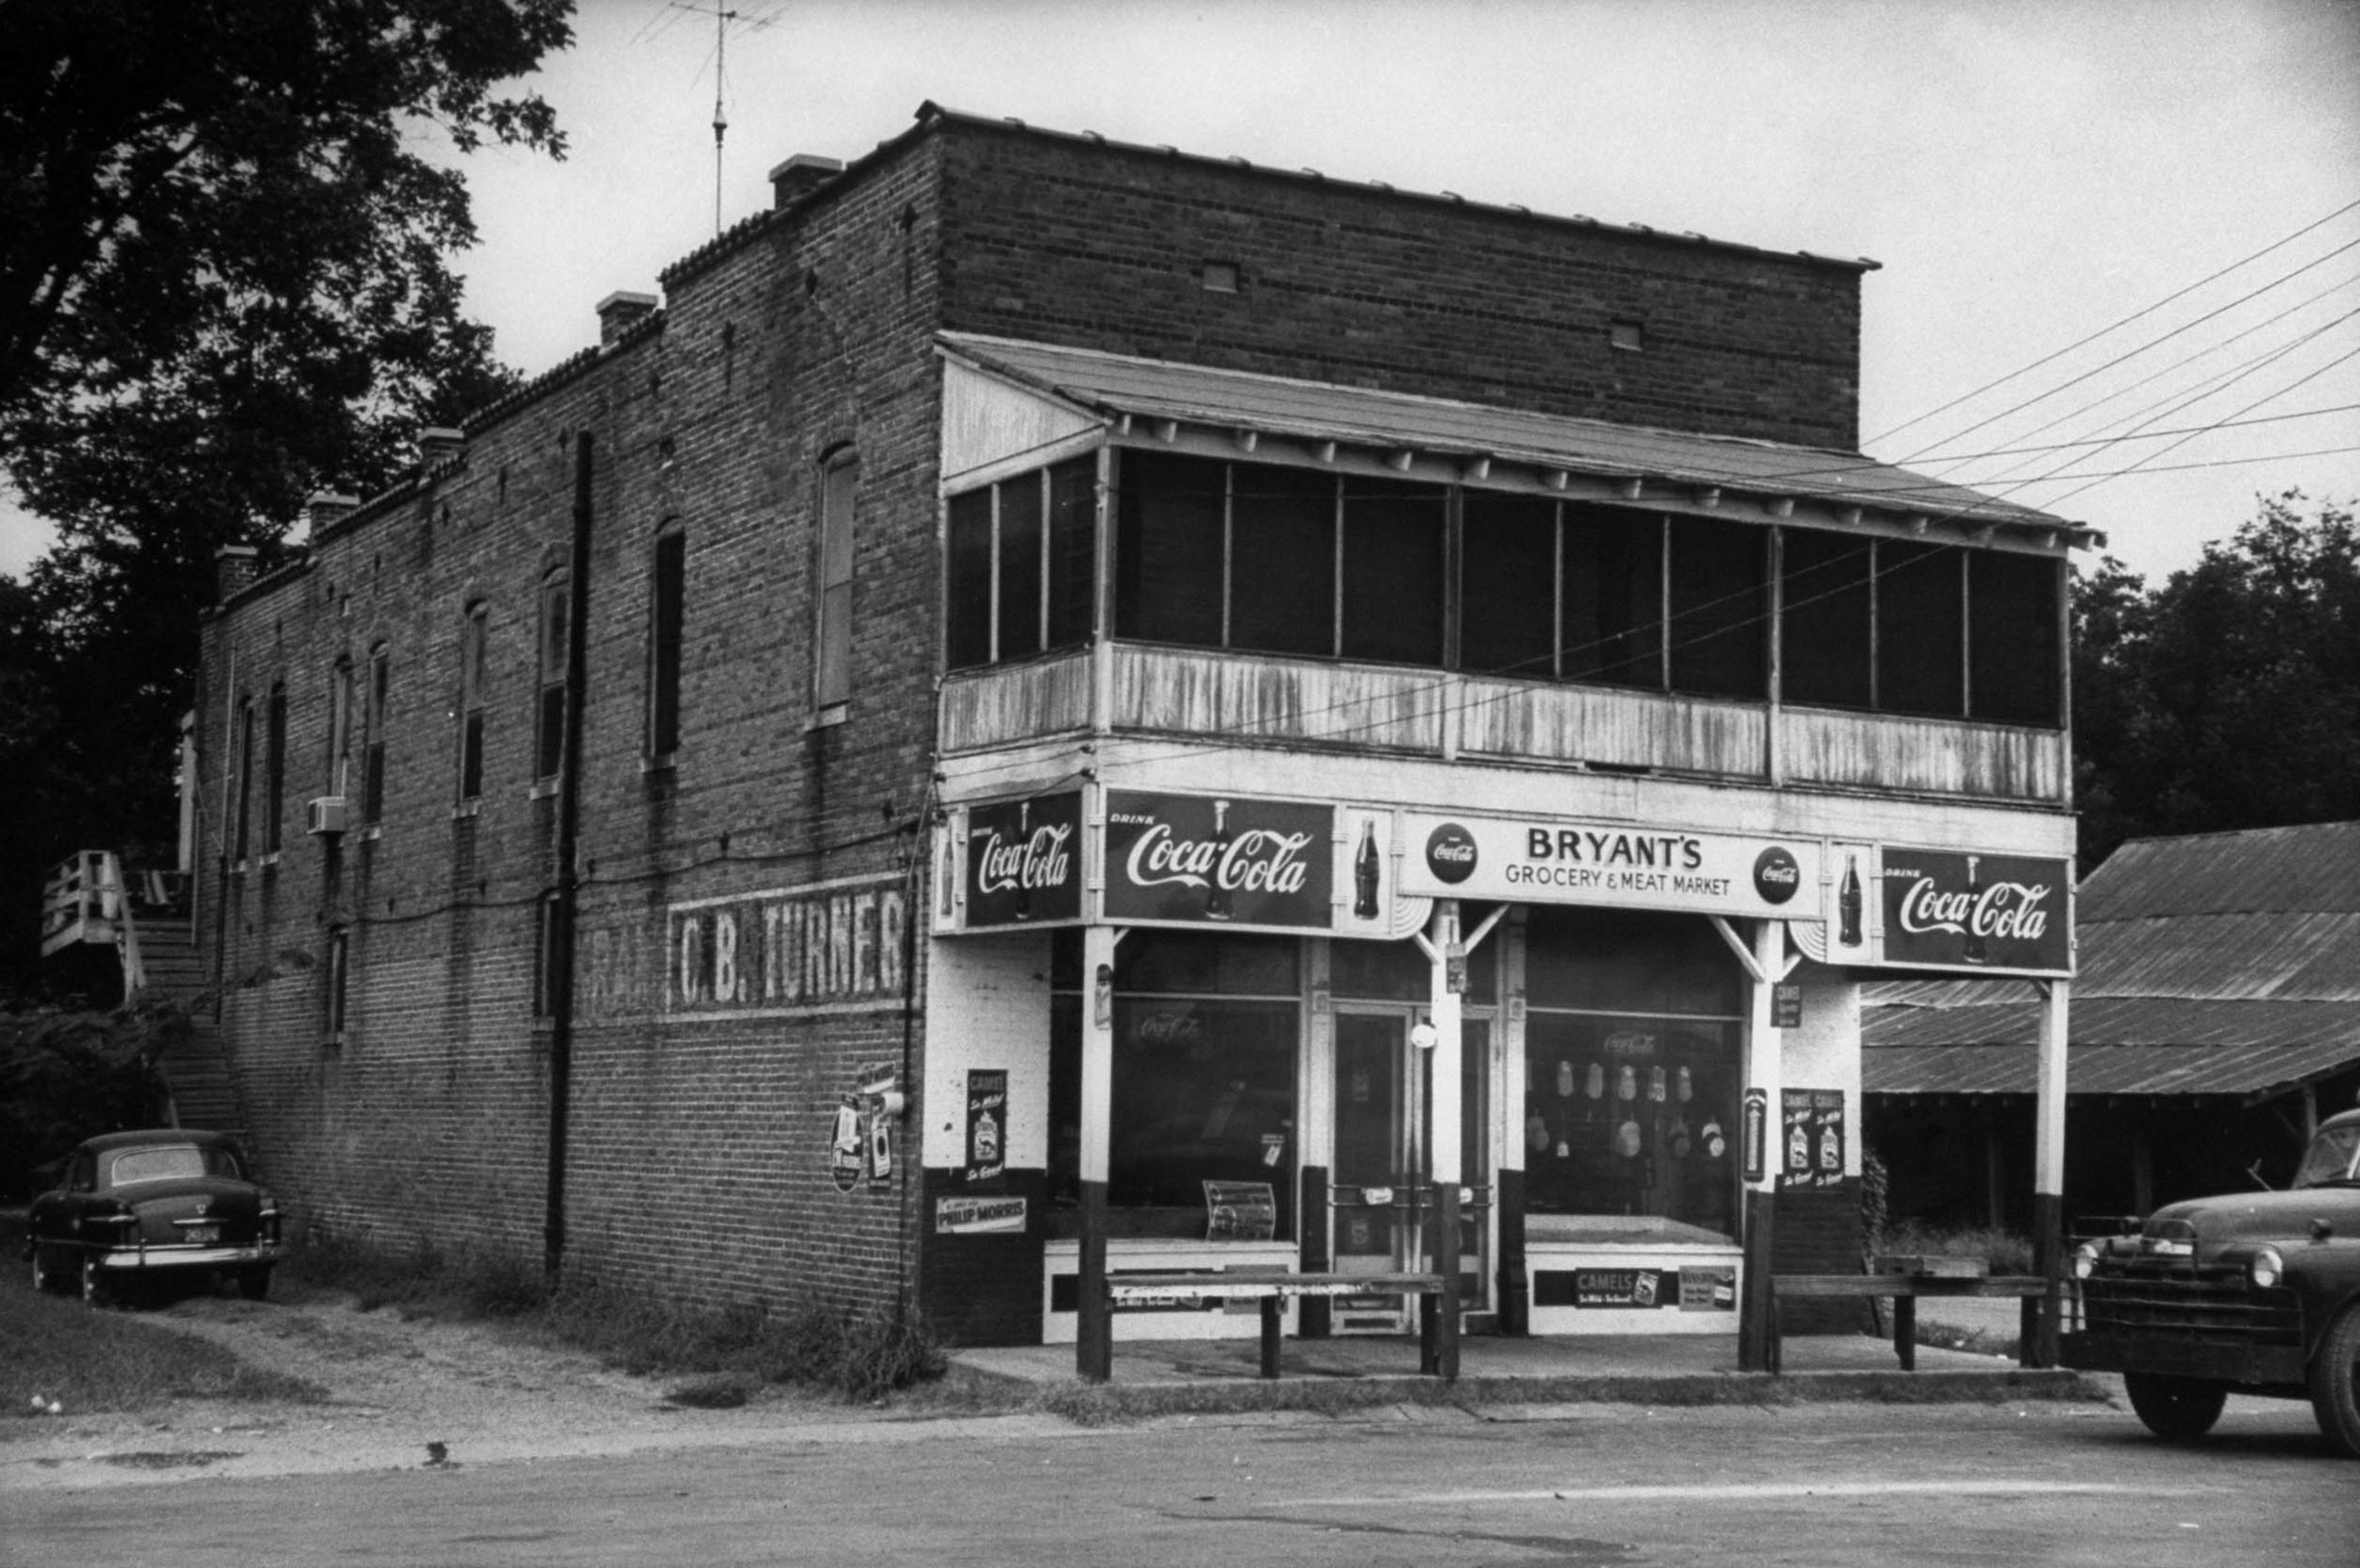 Bryant's grocery store where Emmett Till allegedly whistled at white store owner, Carolyn Bryant. (Photo By Ed Clark/The LIFE Premium Collection/Getty Images)